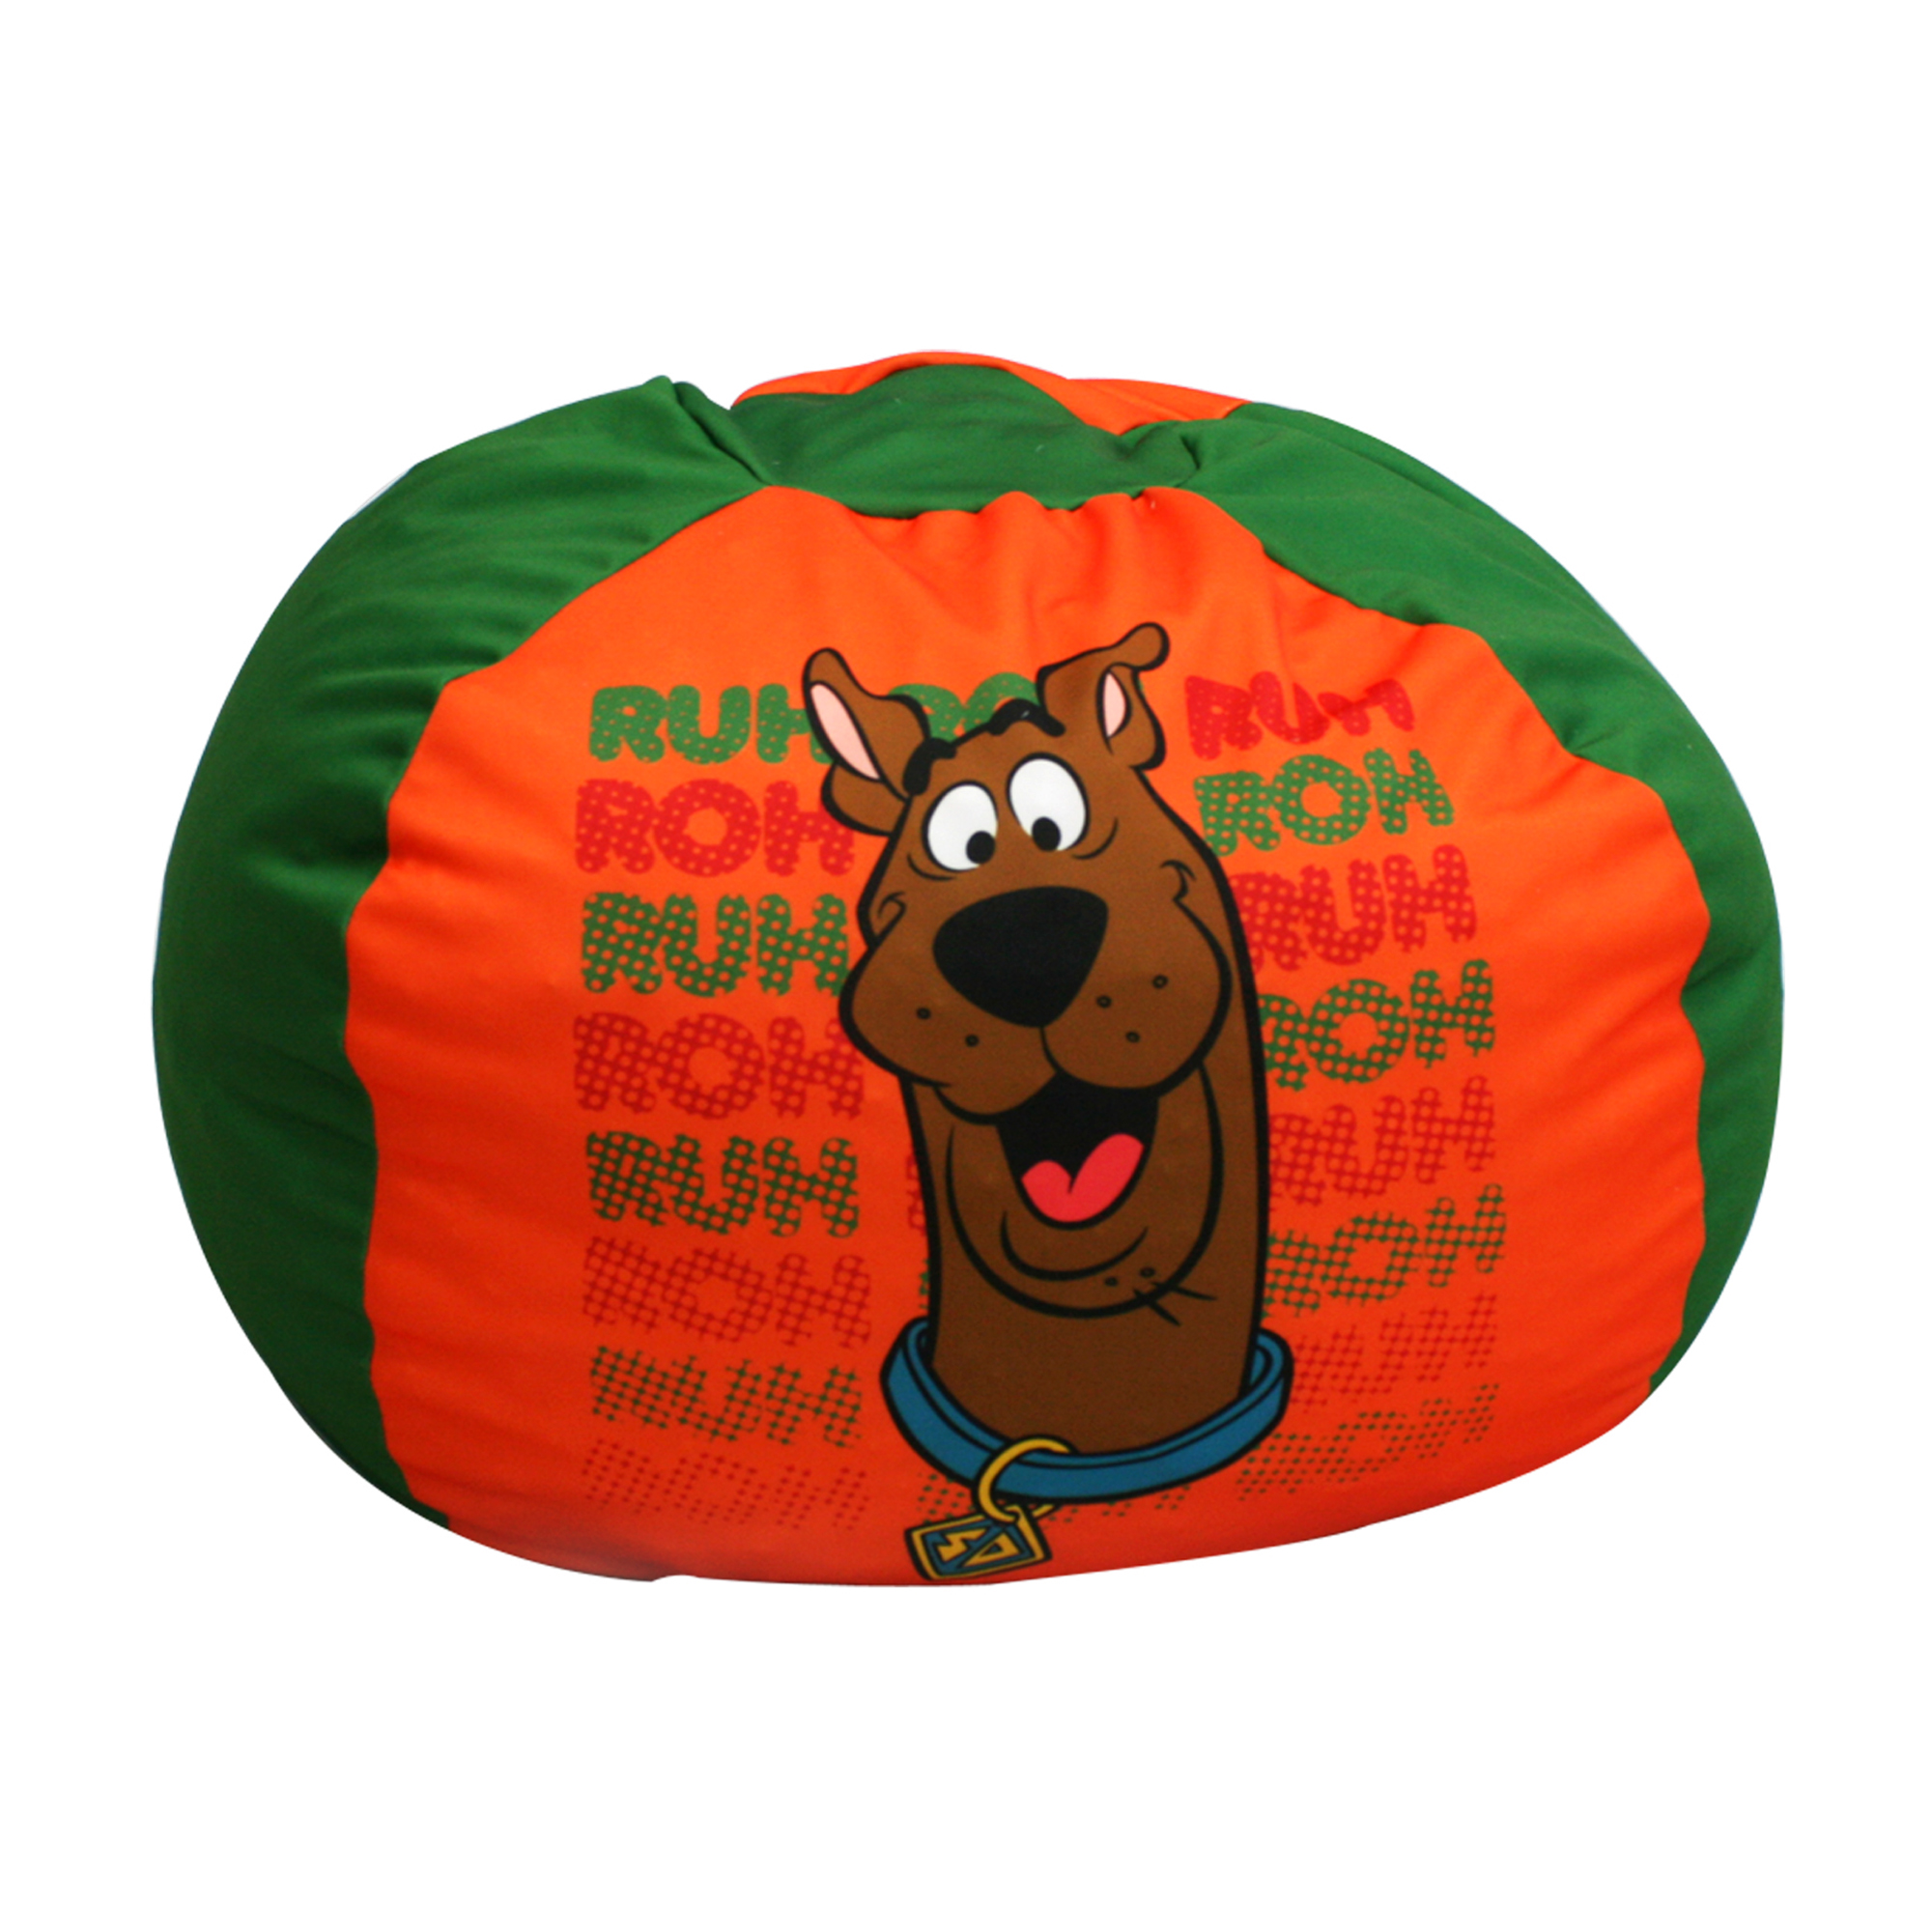 scooby doo chair dillon 1 2 warner brothers toddler roh bean bag